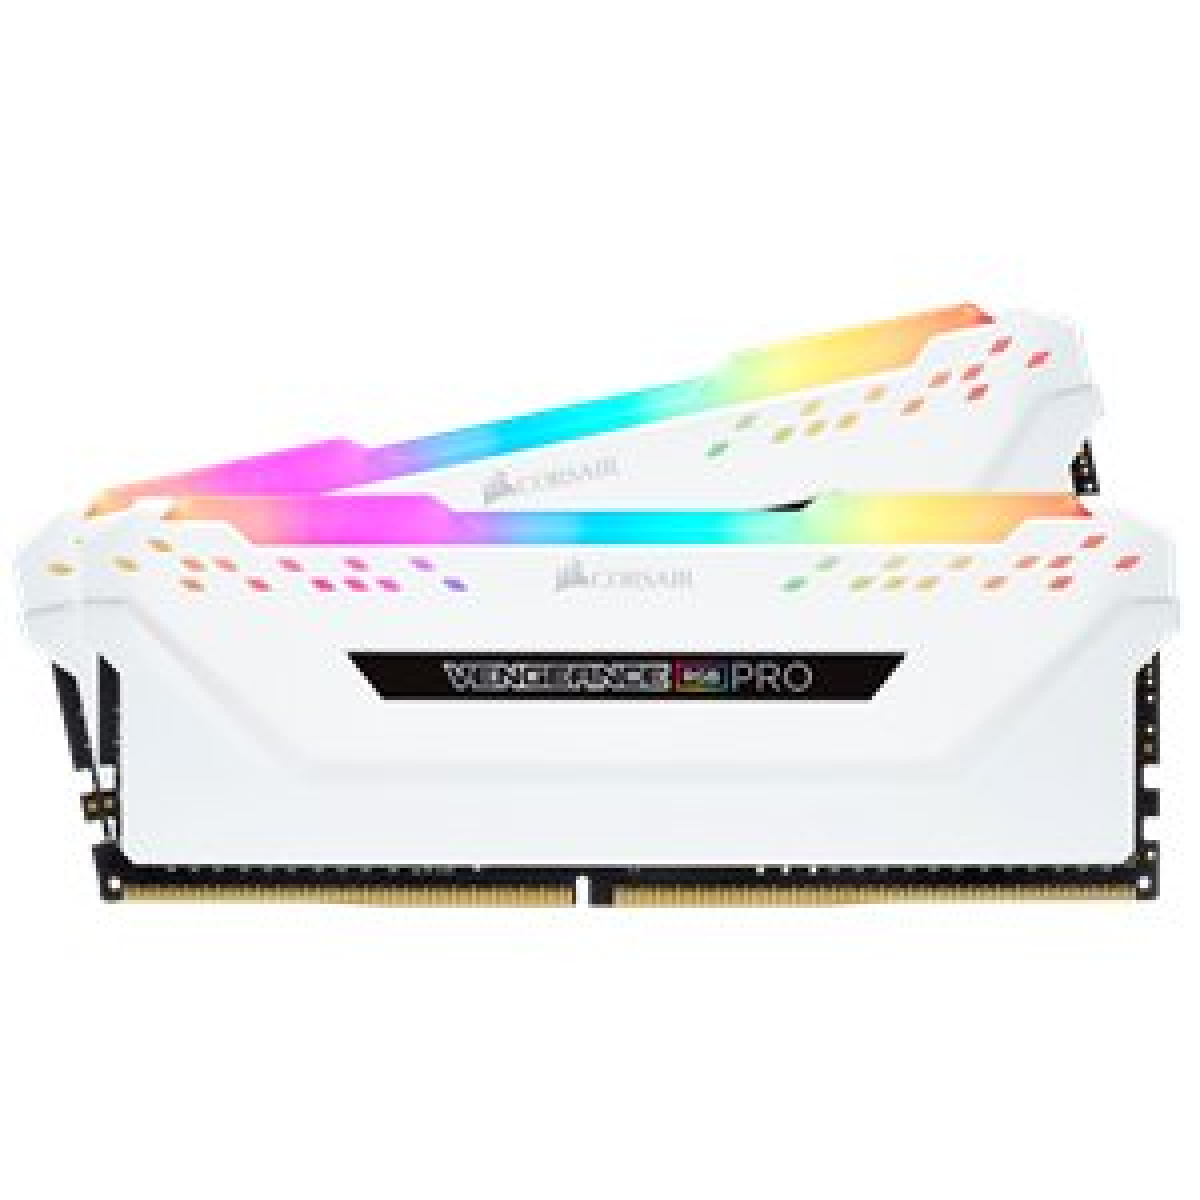 CORSAIR VENGANCE RGB PRO 32GB KIT 3200MHz WHITE